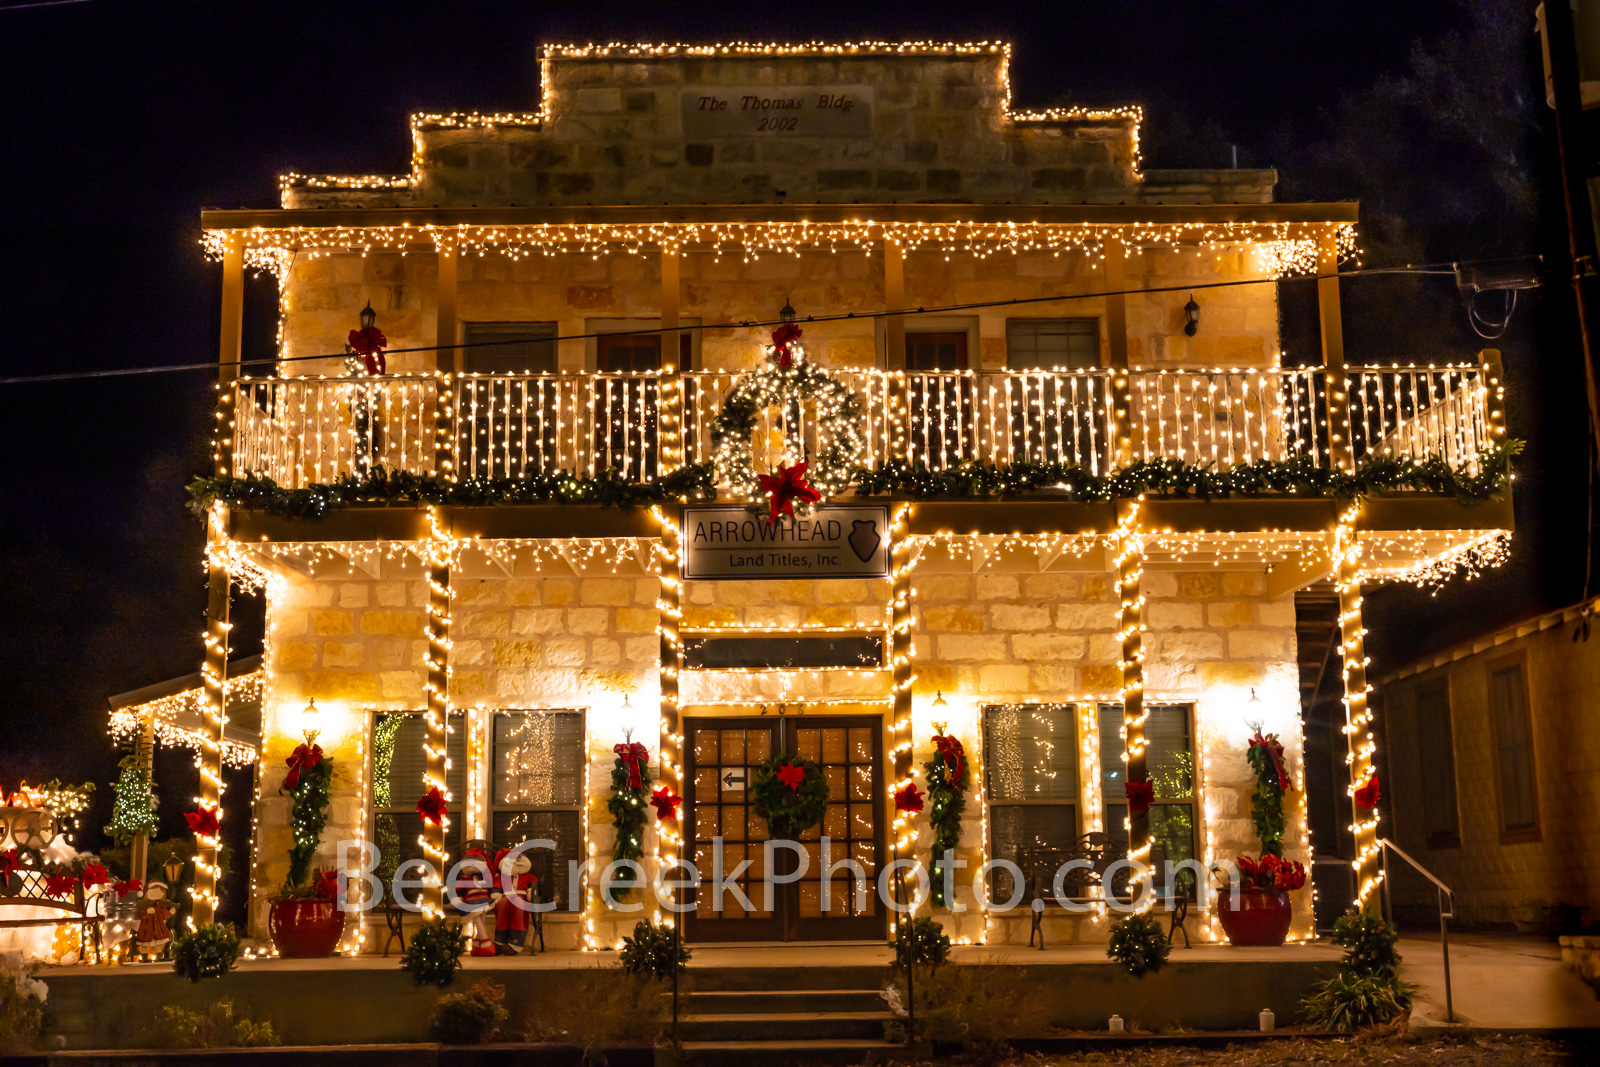 Johnson City Title Company Christmas - Wanted to show how the hill country decorates for Christmas in Johnson City Texas. Johnson...